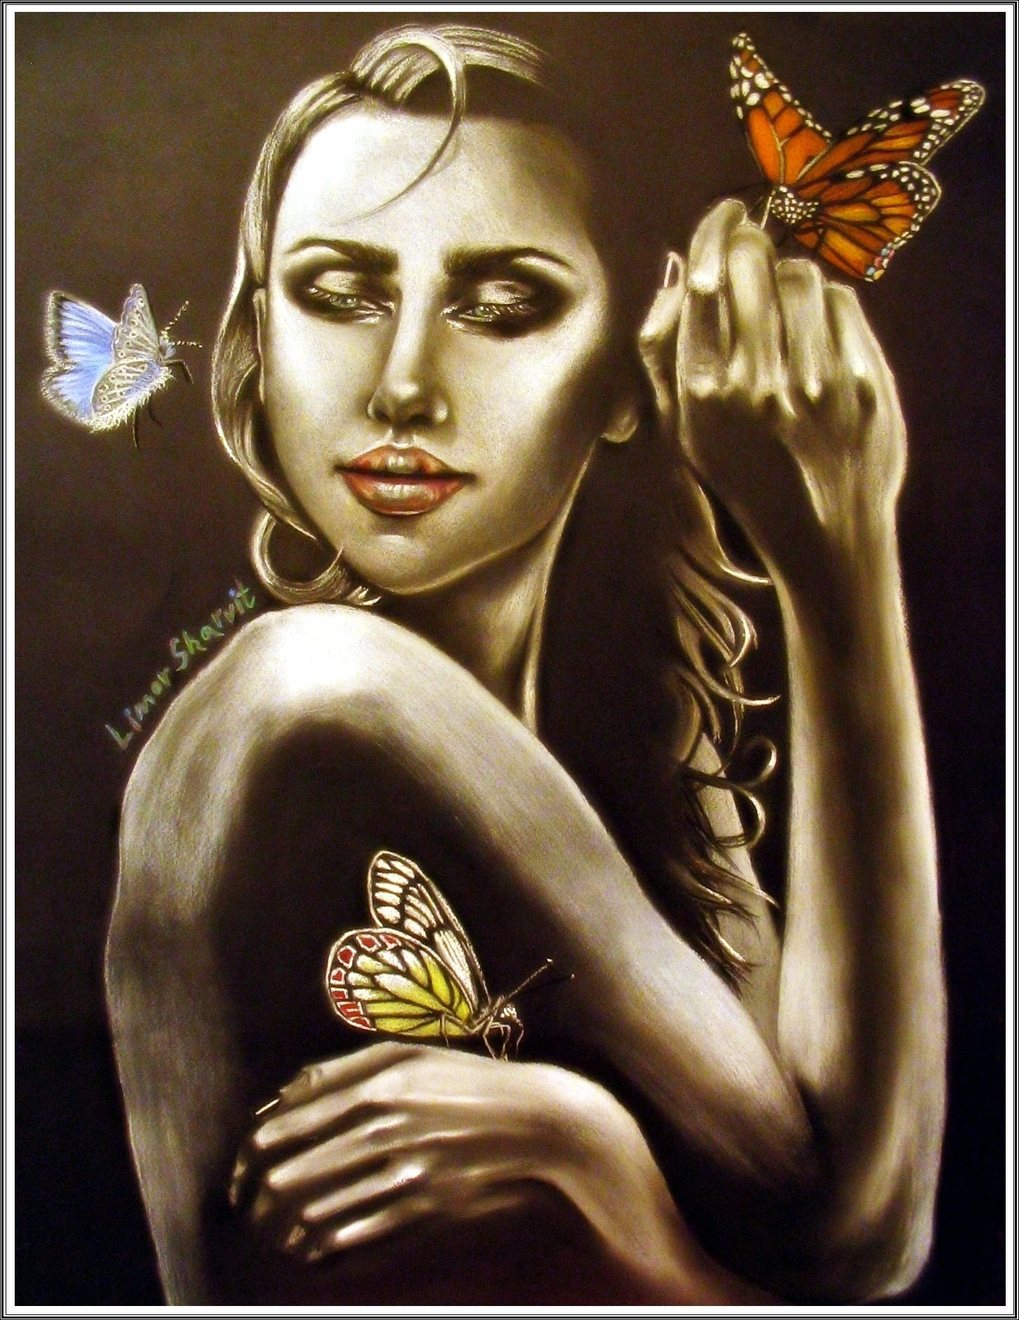 Butterfly girl painting - ציור אשת הפרפר